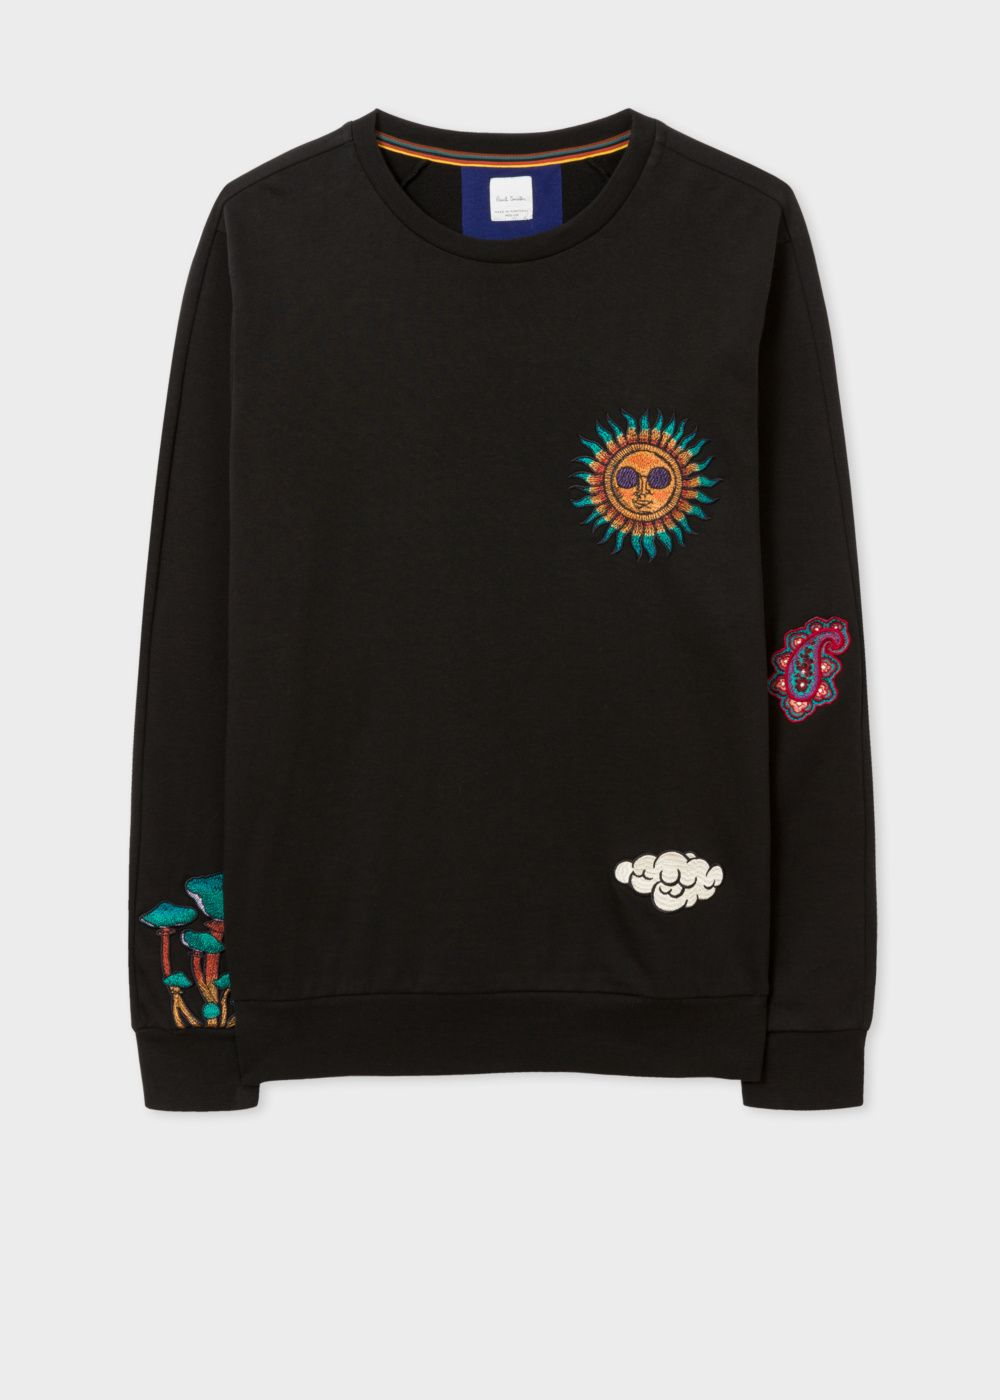 34edf2c9 Paul Smith Men's Black Loopback-Cotton Sweatshirt With 'Psychedelic Sun'  Embroidery